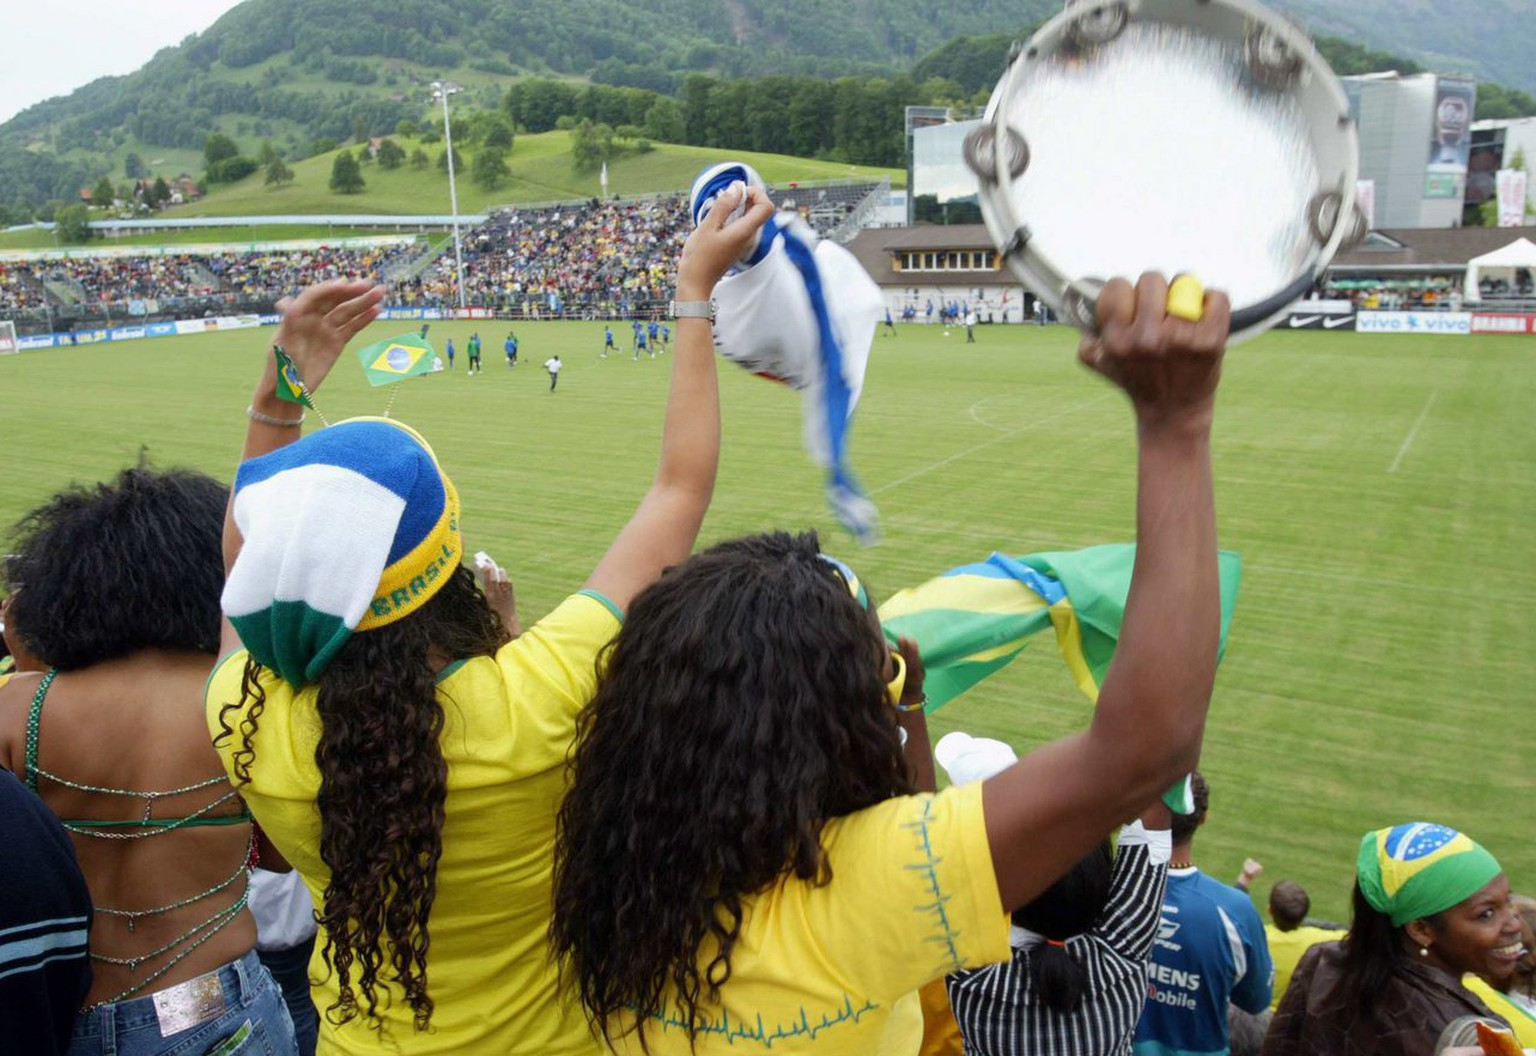 Fans of the Brazilian national soccer team cheer during a trainingsession in Weggis, Switzerland, on Thursday, 25 May 2006. The Brazilian team is in Weggis to prepare for the upcoming World Cup in Germany.   (KEYSTONE/Urs Flueeler)